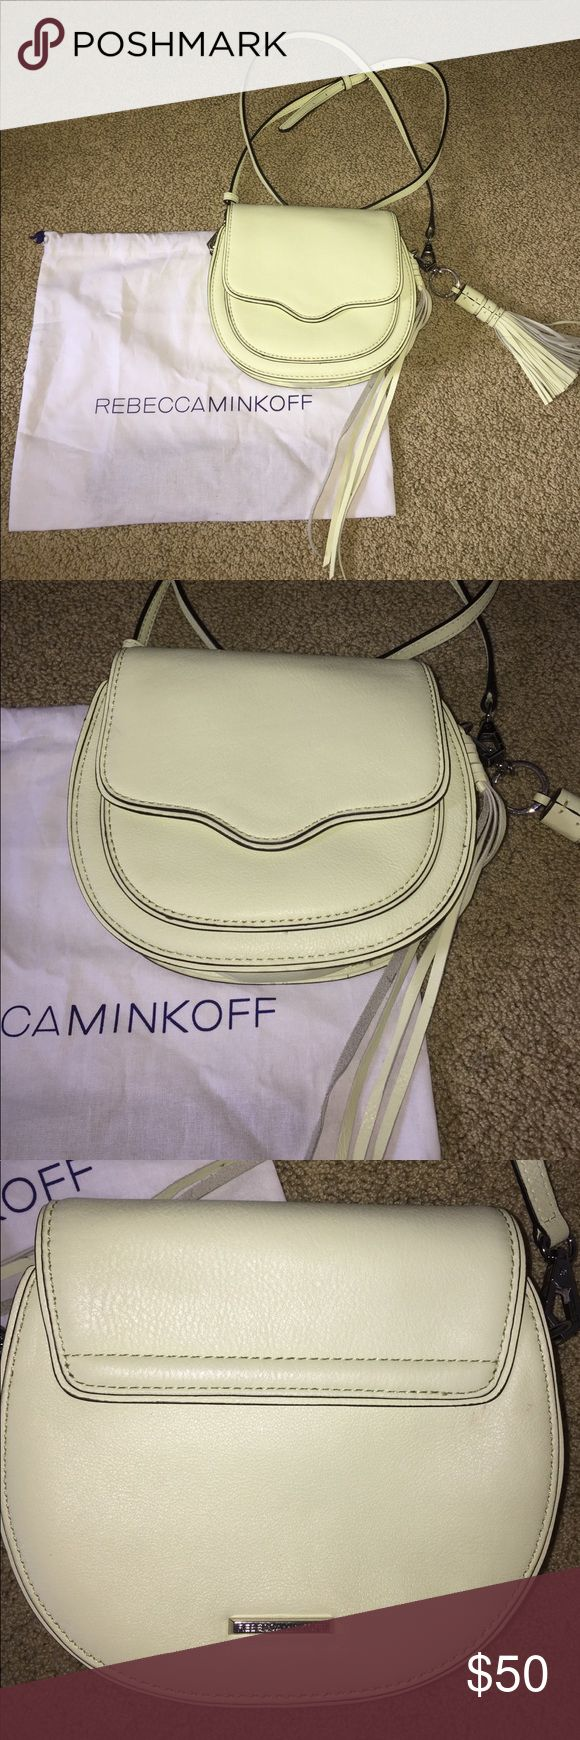 Rebecca Minkoff purse A yellowish/green Rebecca Minkoff! Love love love this purse, but personally, the color is just not for me. It's brand new! Rebecca Minkoff Bags Mini Bags